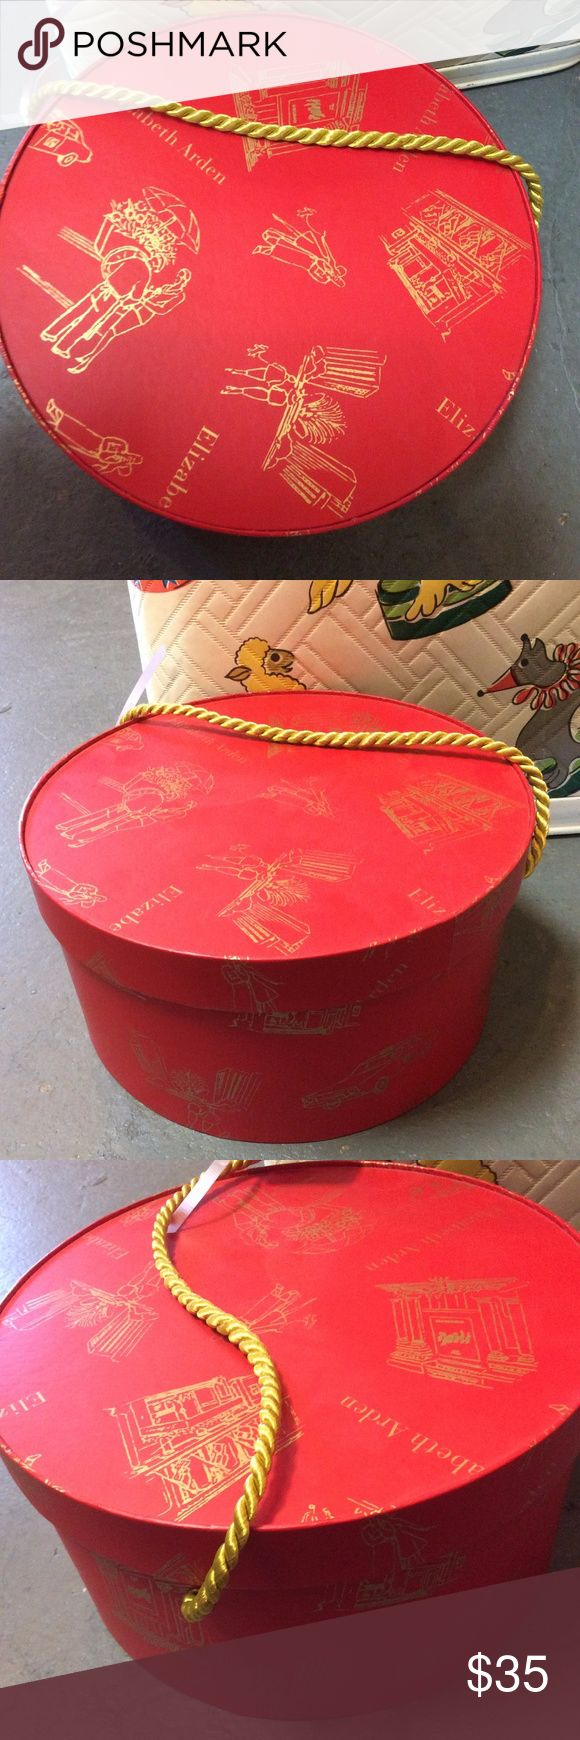 OBO : Vintage Elizabeth Arden Red Hat Box Store your vintage or antique hats in this small/medium size round bucket with chord. Romantic street scenes. flowers and umbrella imagery in gold. J00041108882465 Elizabeth Arden Accessories Hats